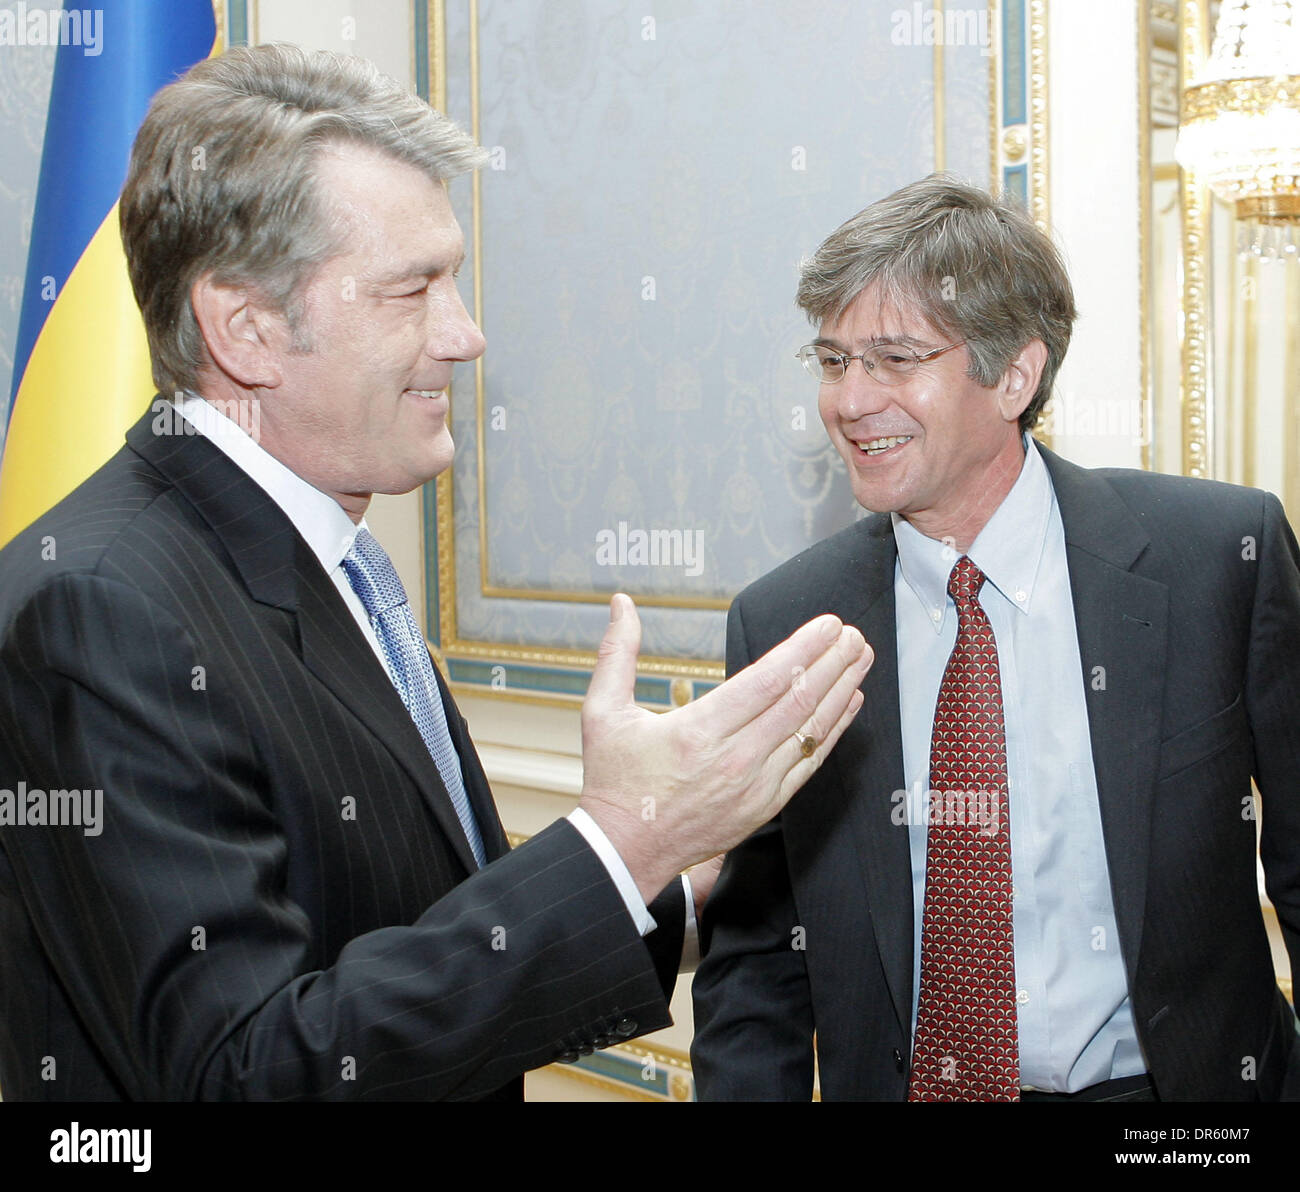 Apr 27, 2009 - Kiev, Ukraine - Ukrainian President VIKTOR YUSHCHENKO (l) welcomes U.S. Deputy Secretary of State JAMES STEINBERG (r).The officials discussed problems of international and regional policies. Yushchenko made an assessment of the domestic political and economic situation in Ukraine. `Our relations are currently strategic and very important to Ukraine,` he stressed. (Cr - Stock Image